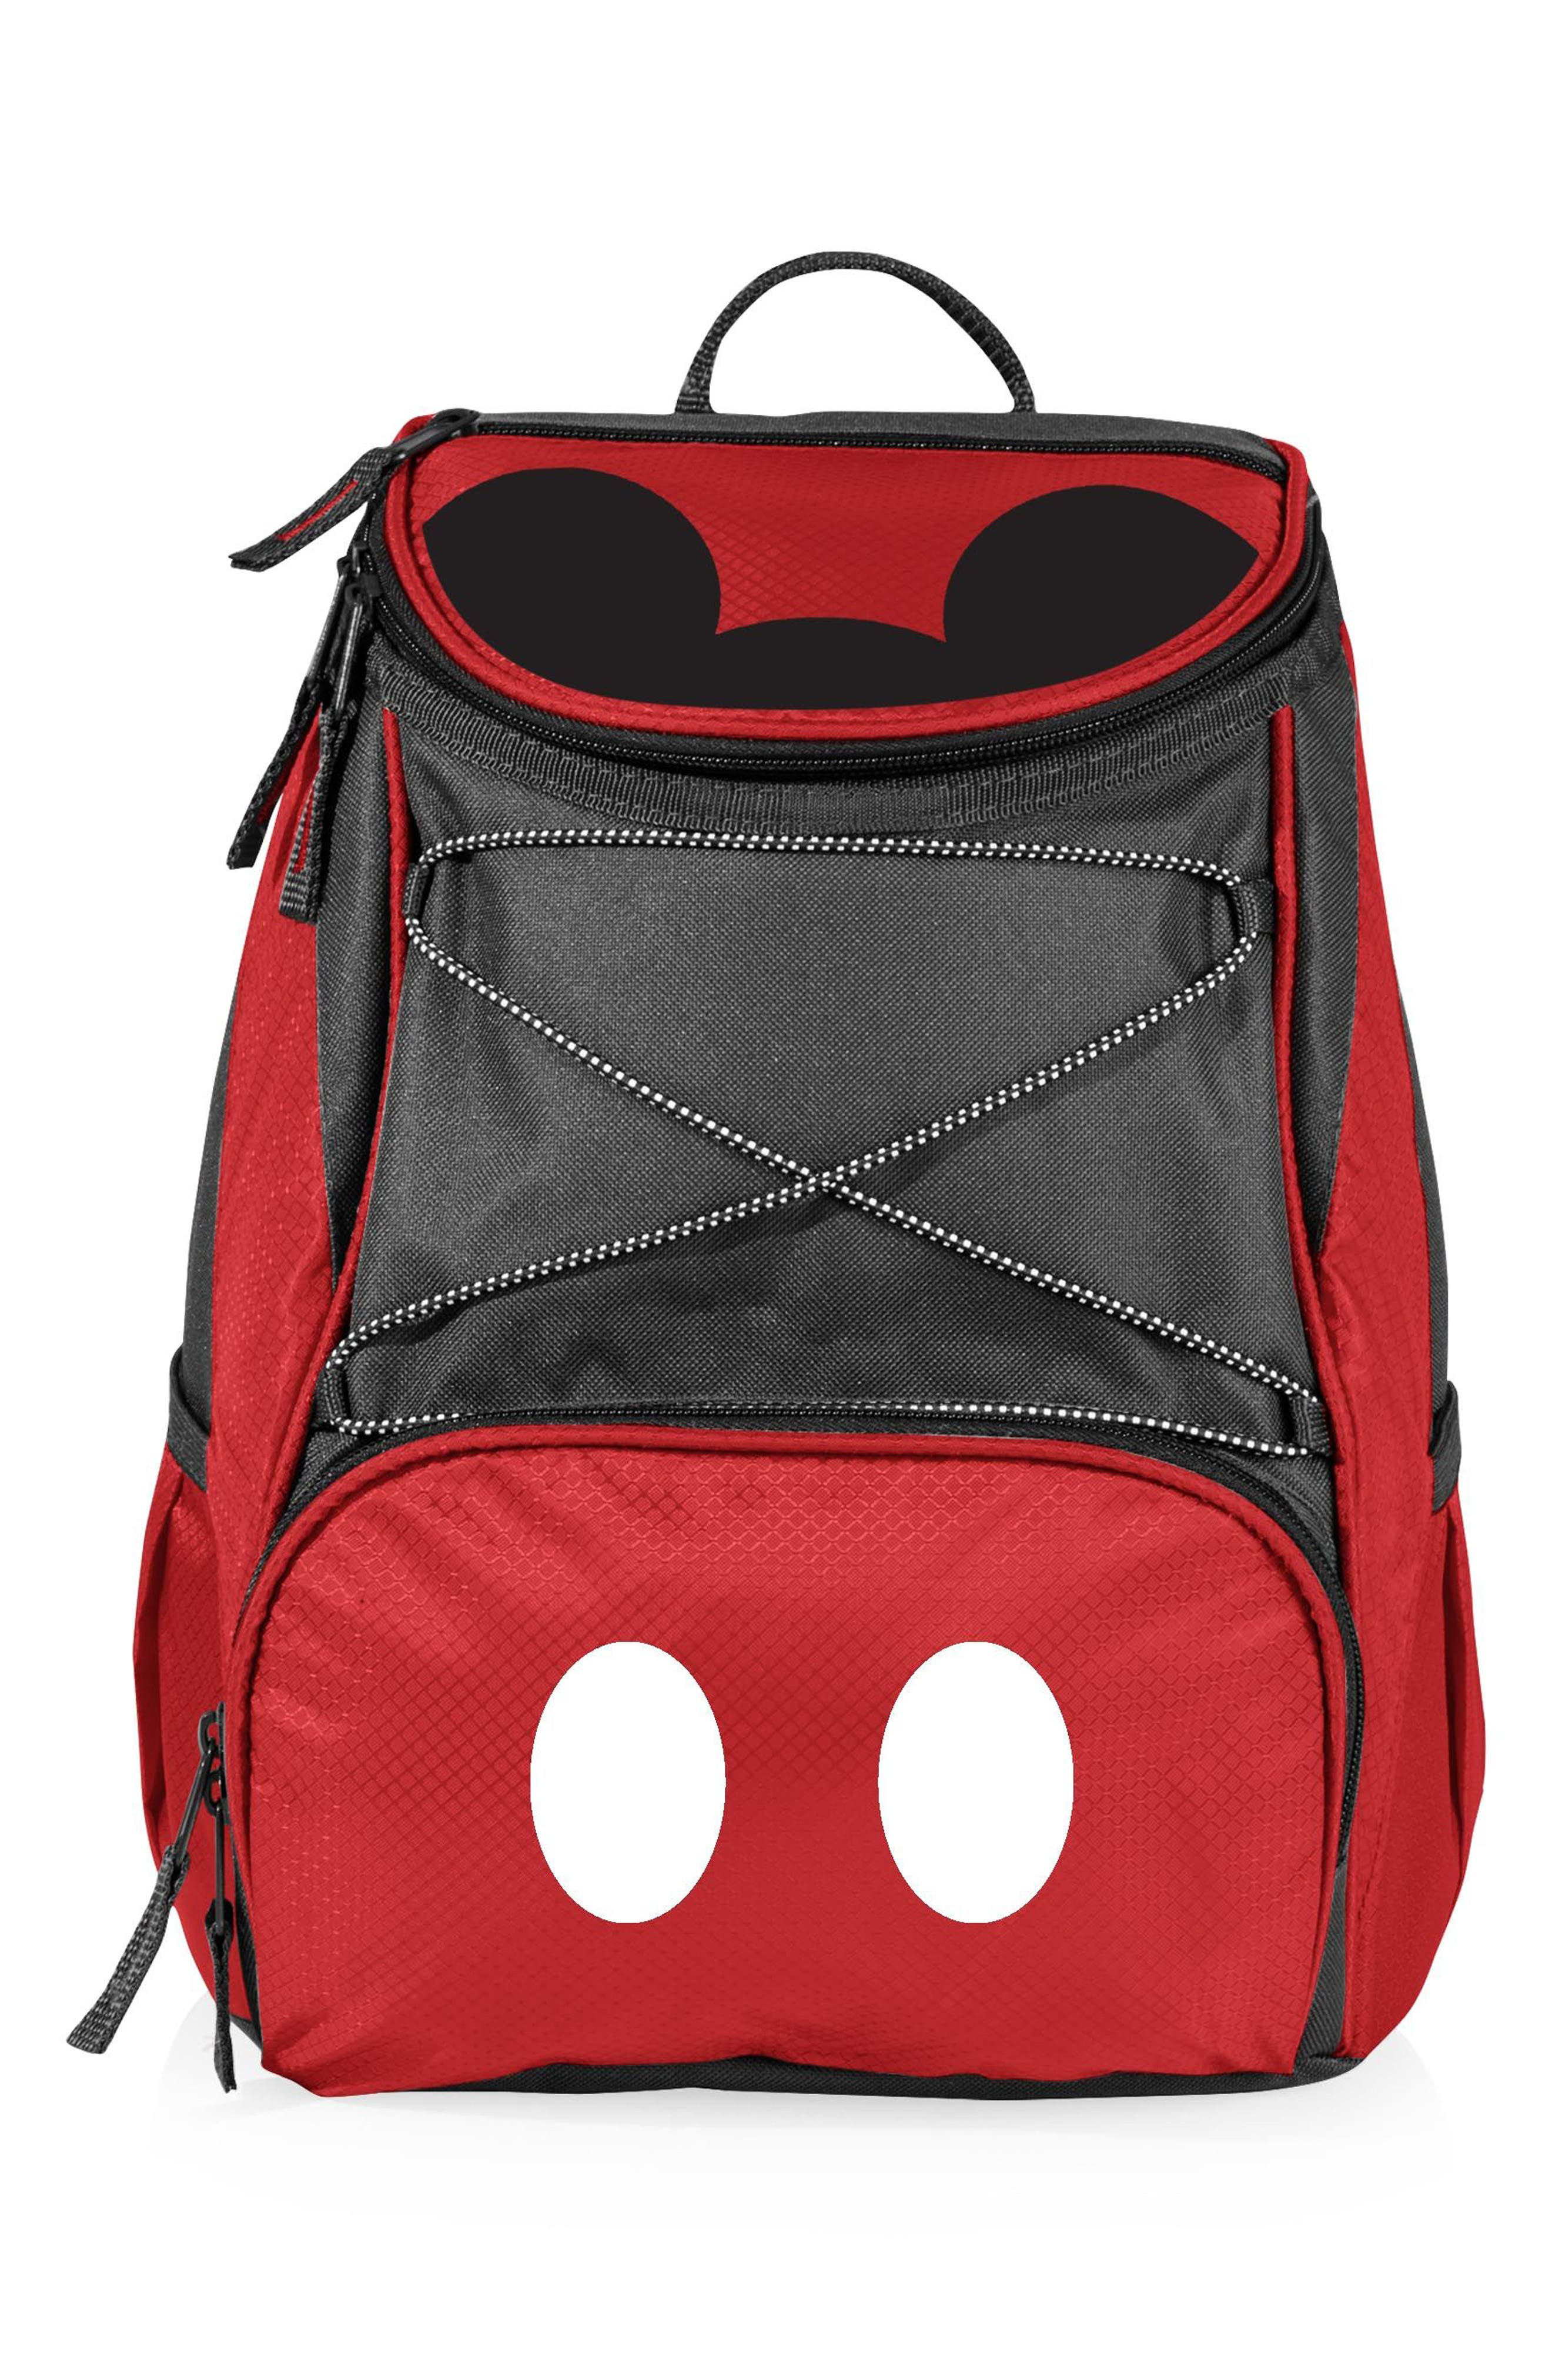 Picnic Time PTX - Disney Water Resistant Backpack Cooler